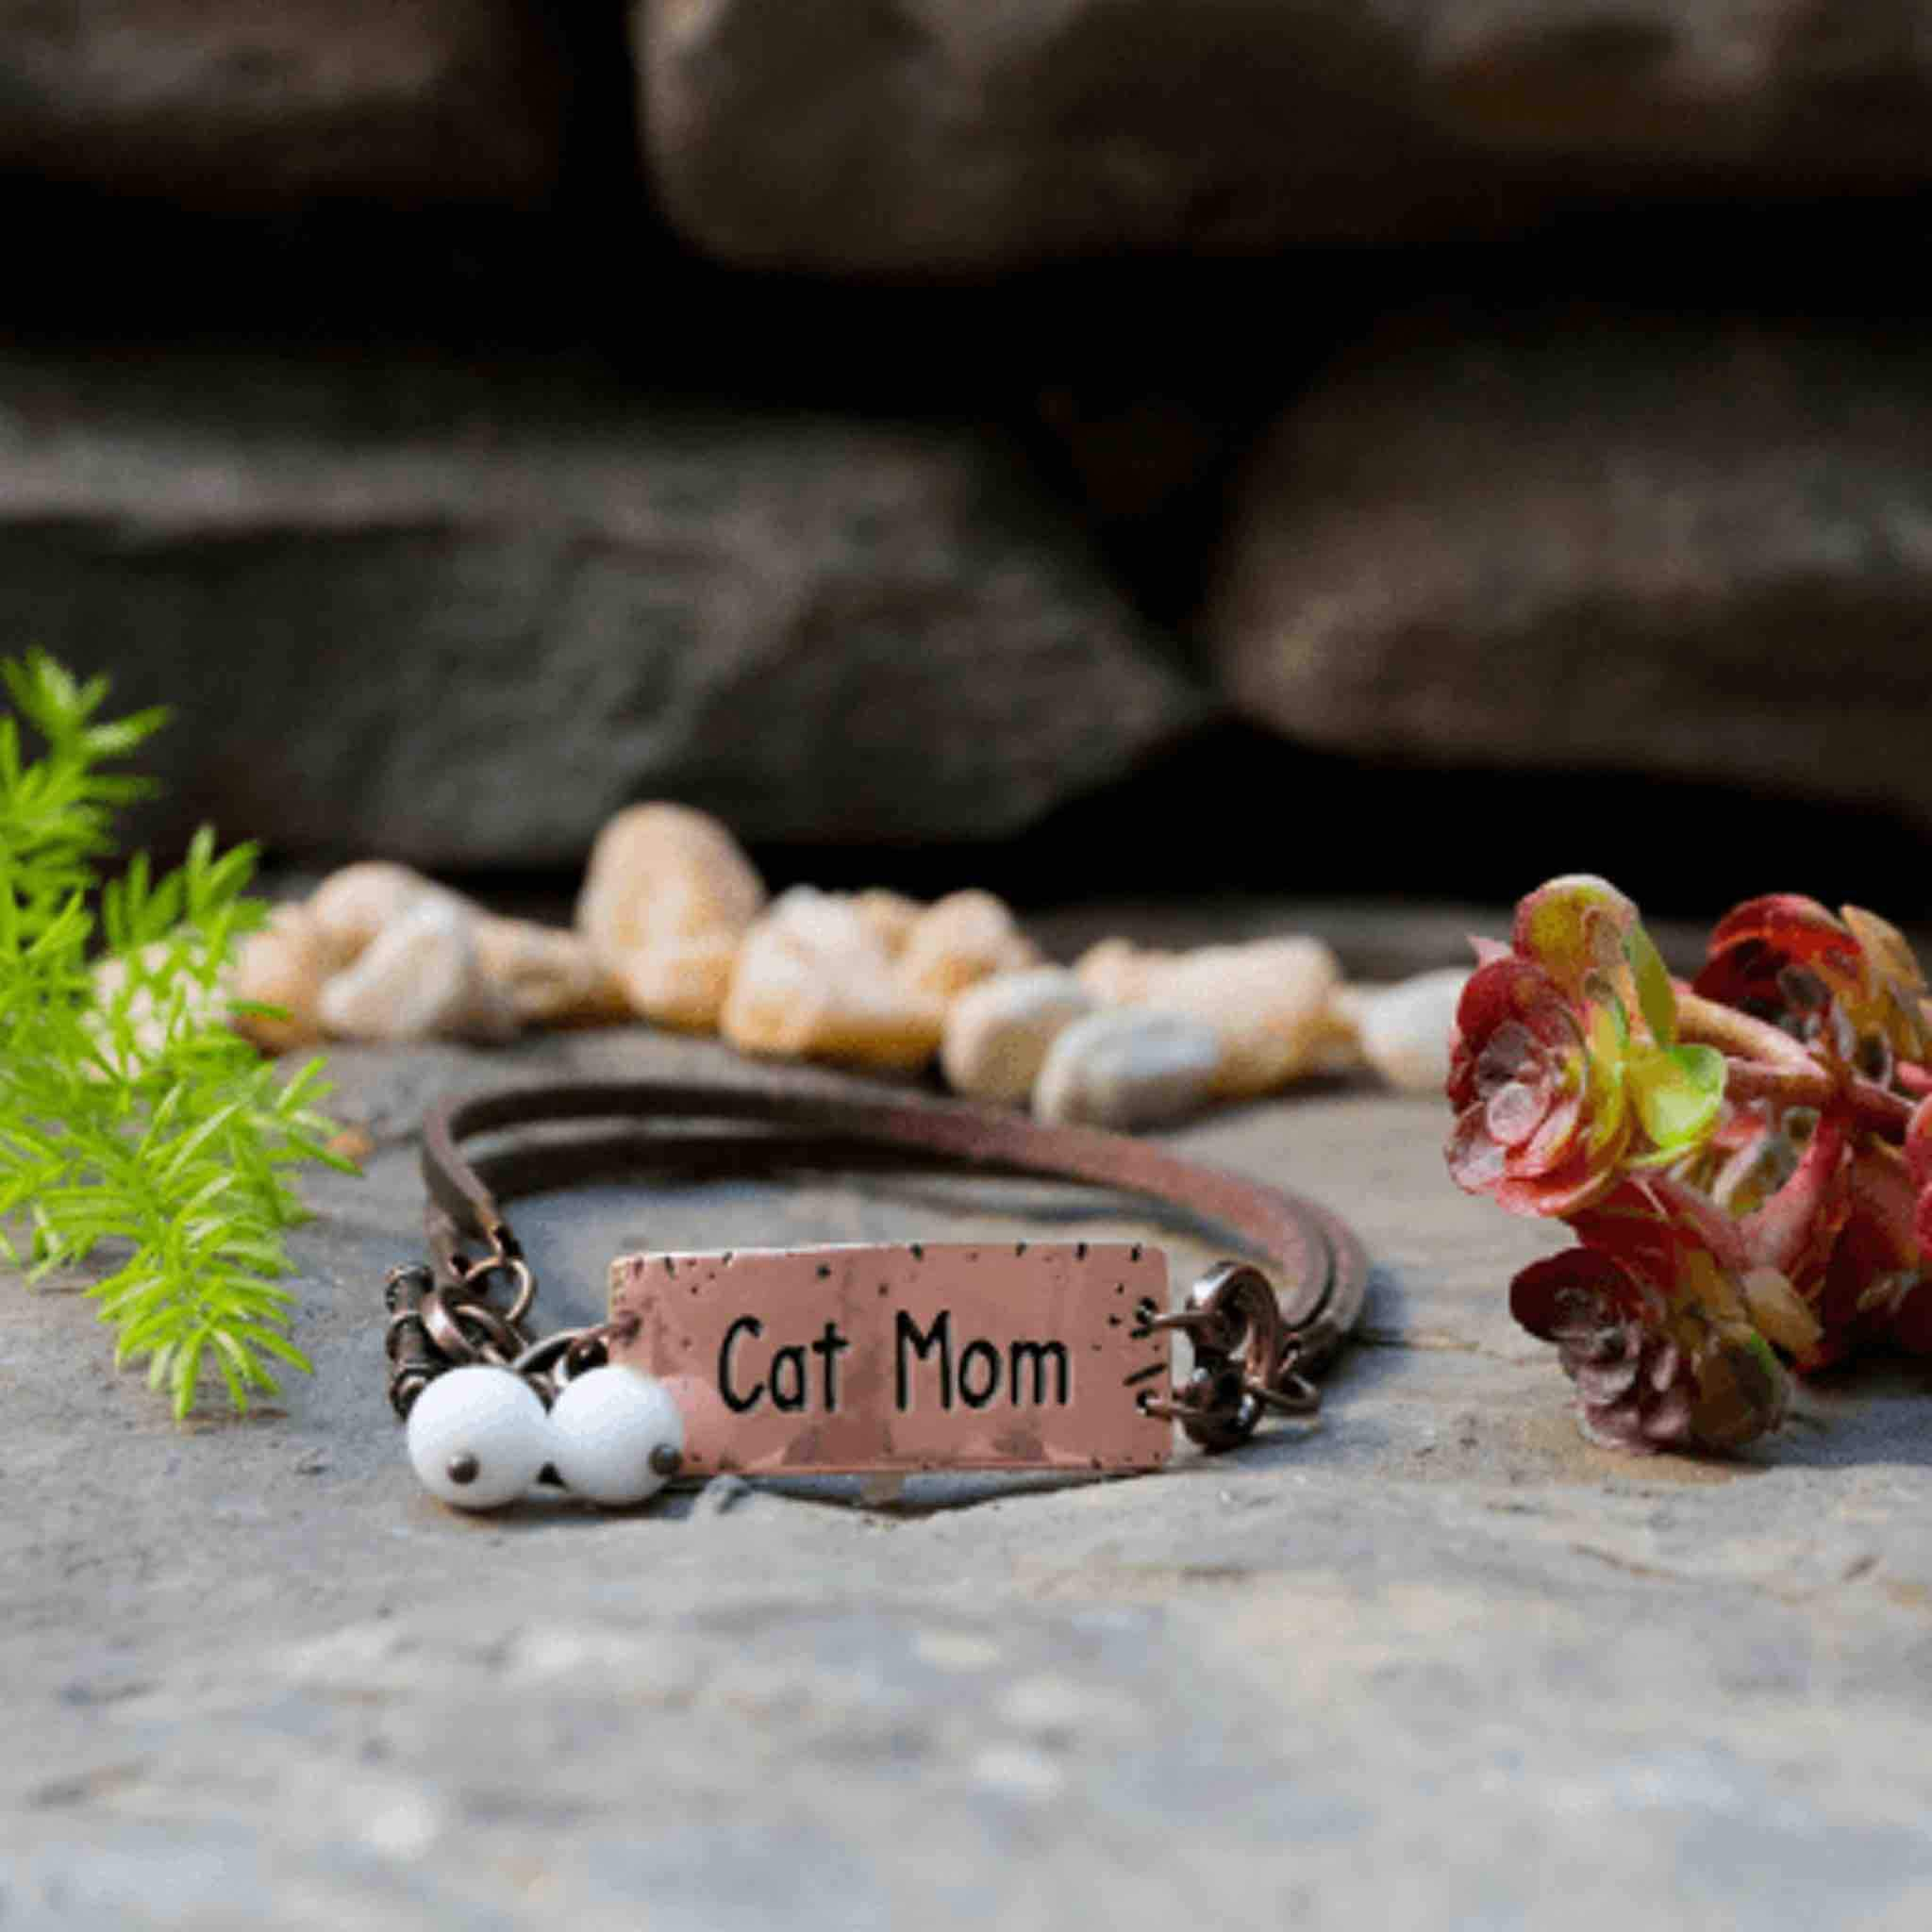 Cat Mom Rustic Bracelet